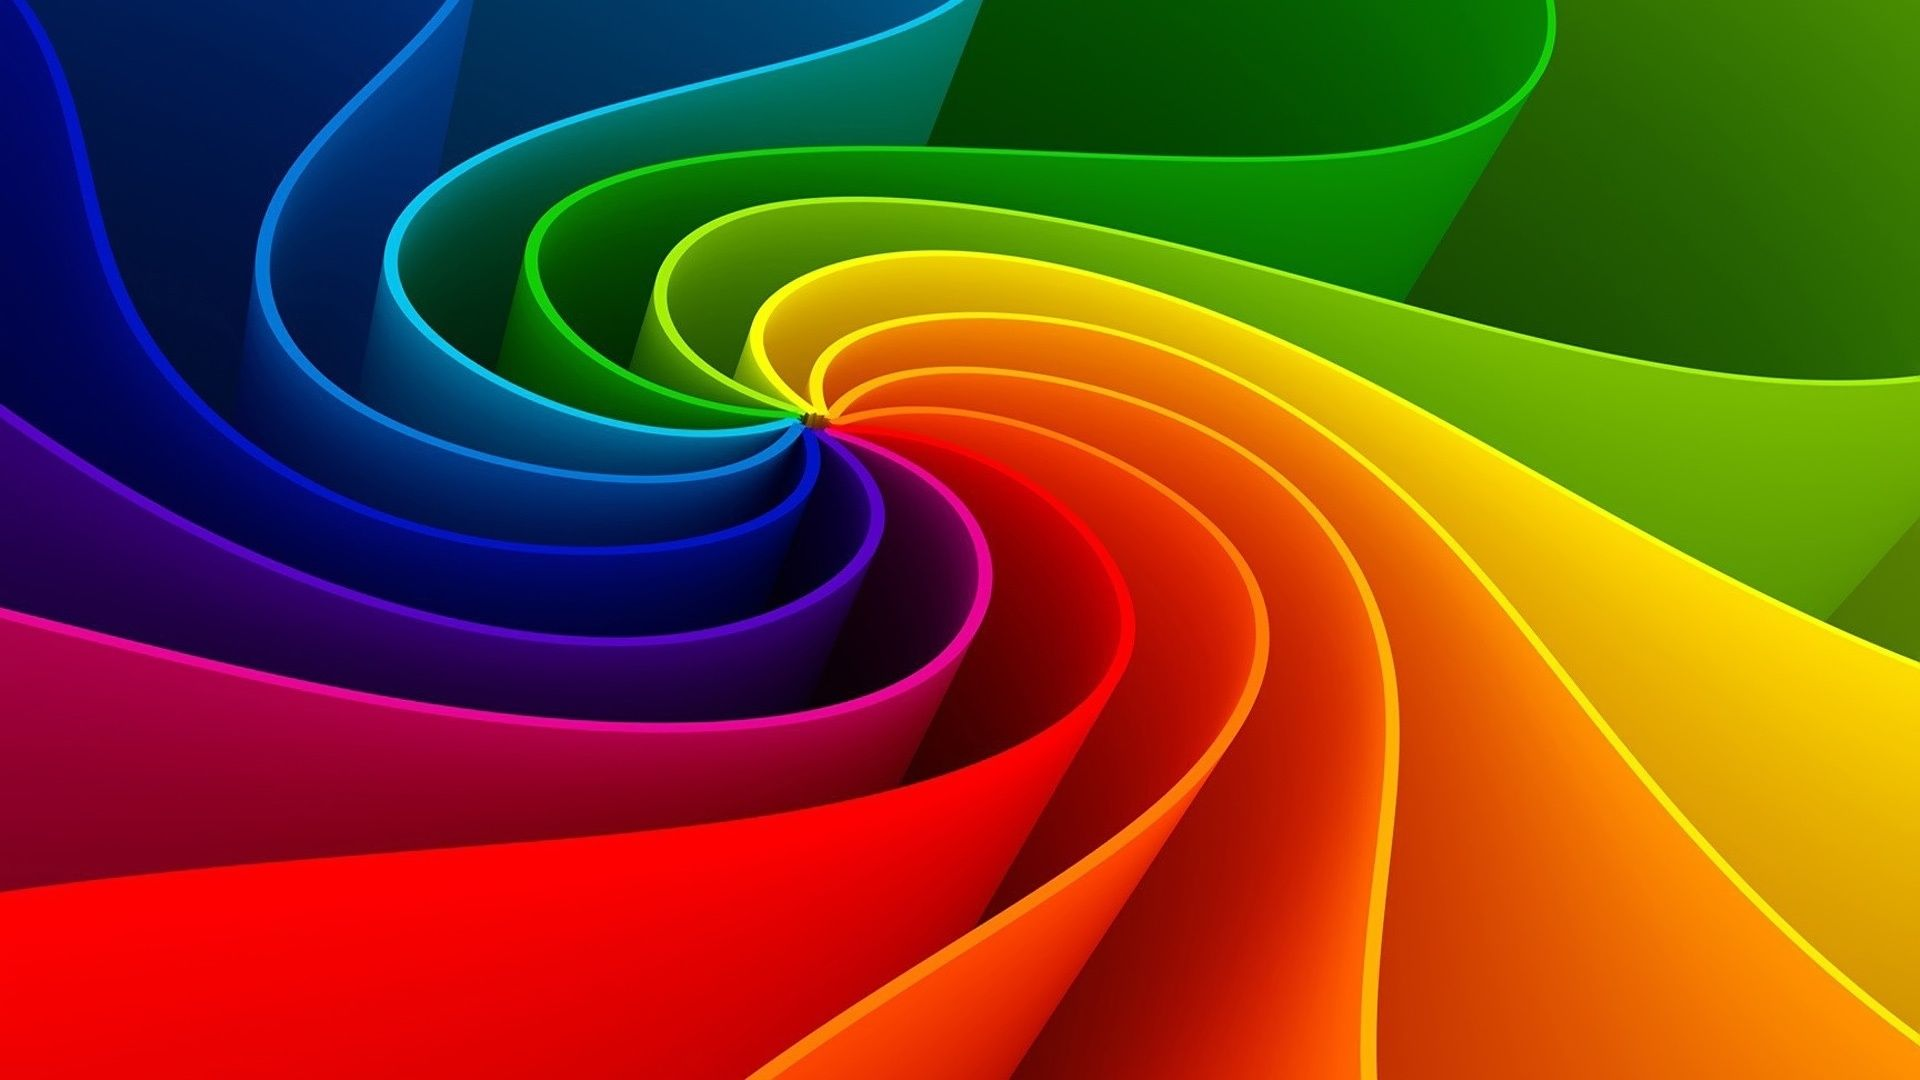 1920x1080 Rainbow Computer Backgrounds Wallpaper Jpg 425 Kb